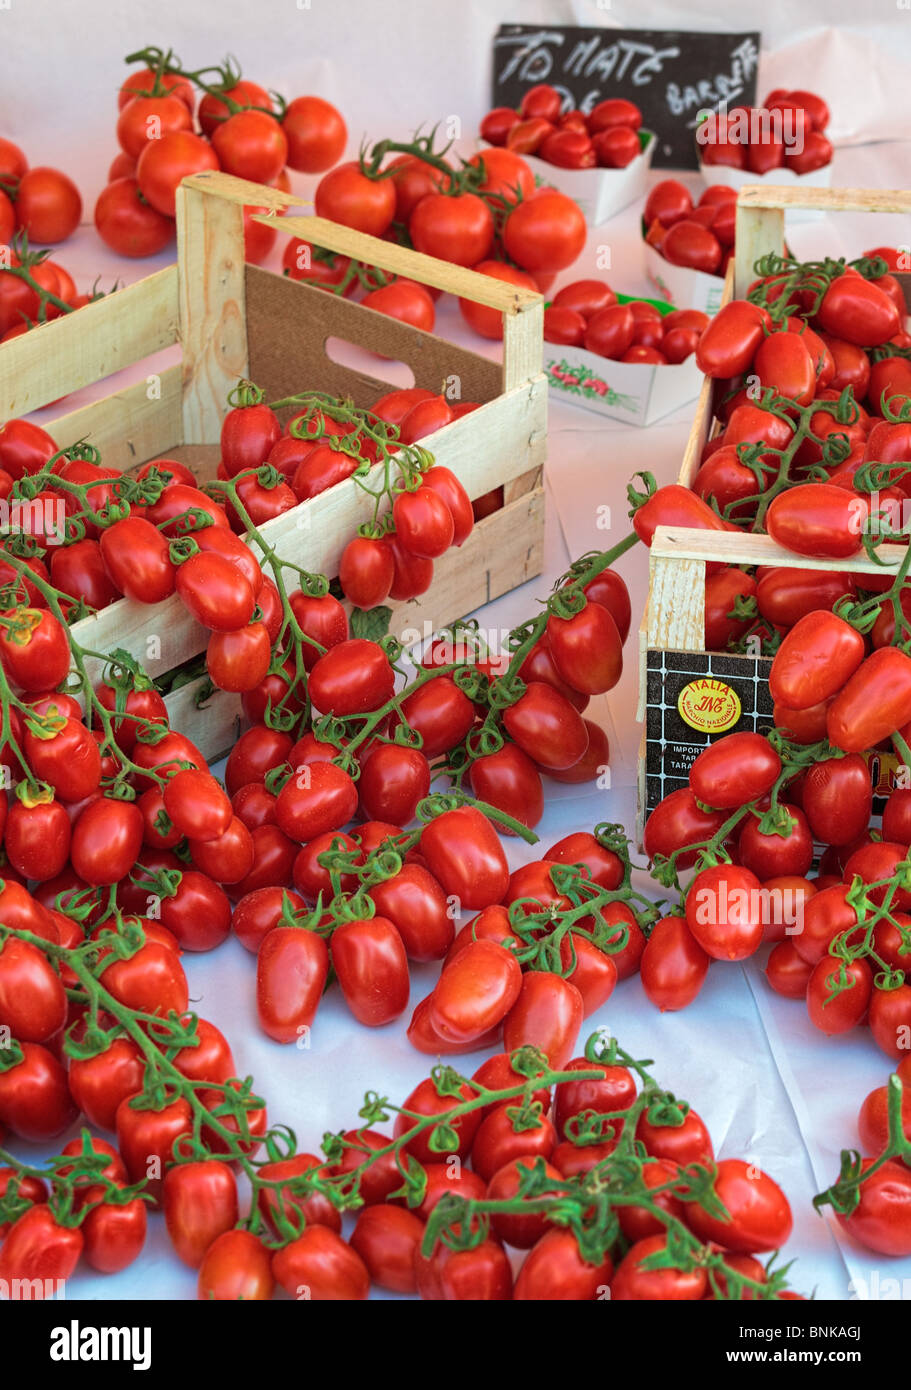 Fresh Italian tomatoes at the market in old town Nice ,France. This market is called 'Marche aux Fleur' - Stock Image